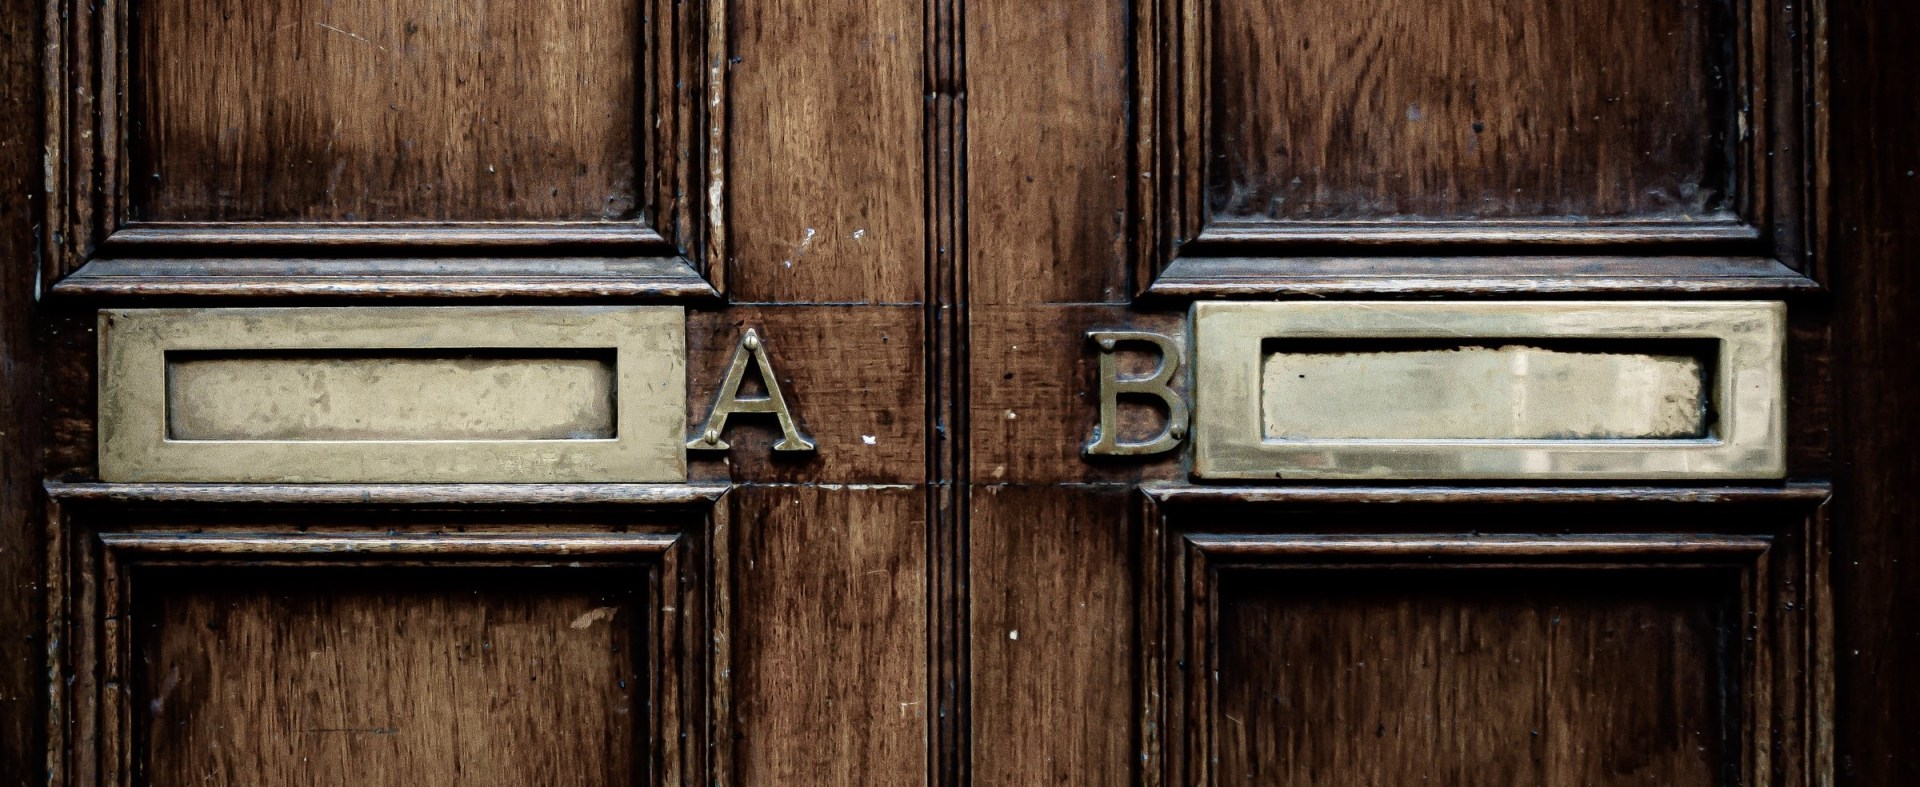 Door with A and B mail slots